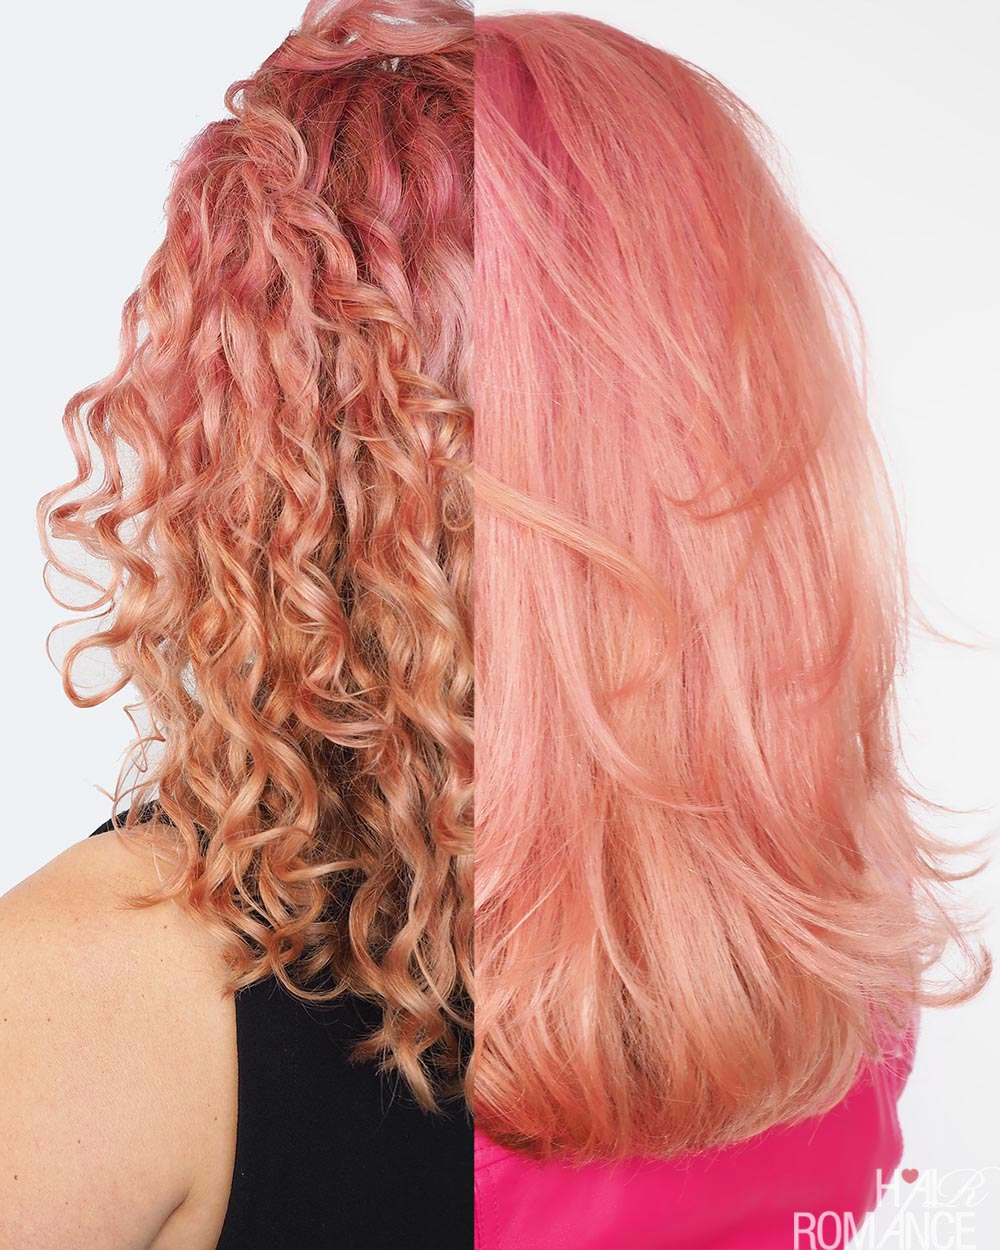 Learn how to get your curls again after straightening curly hair